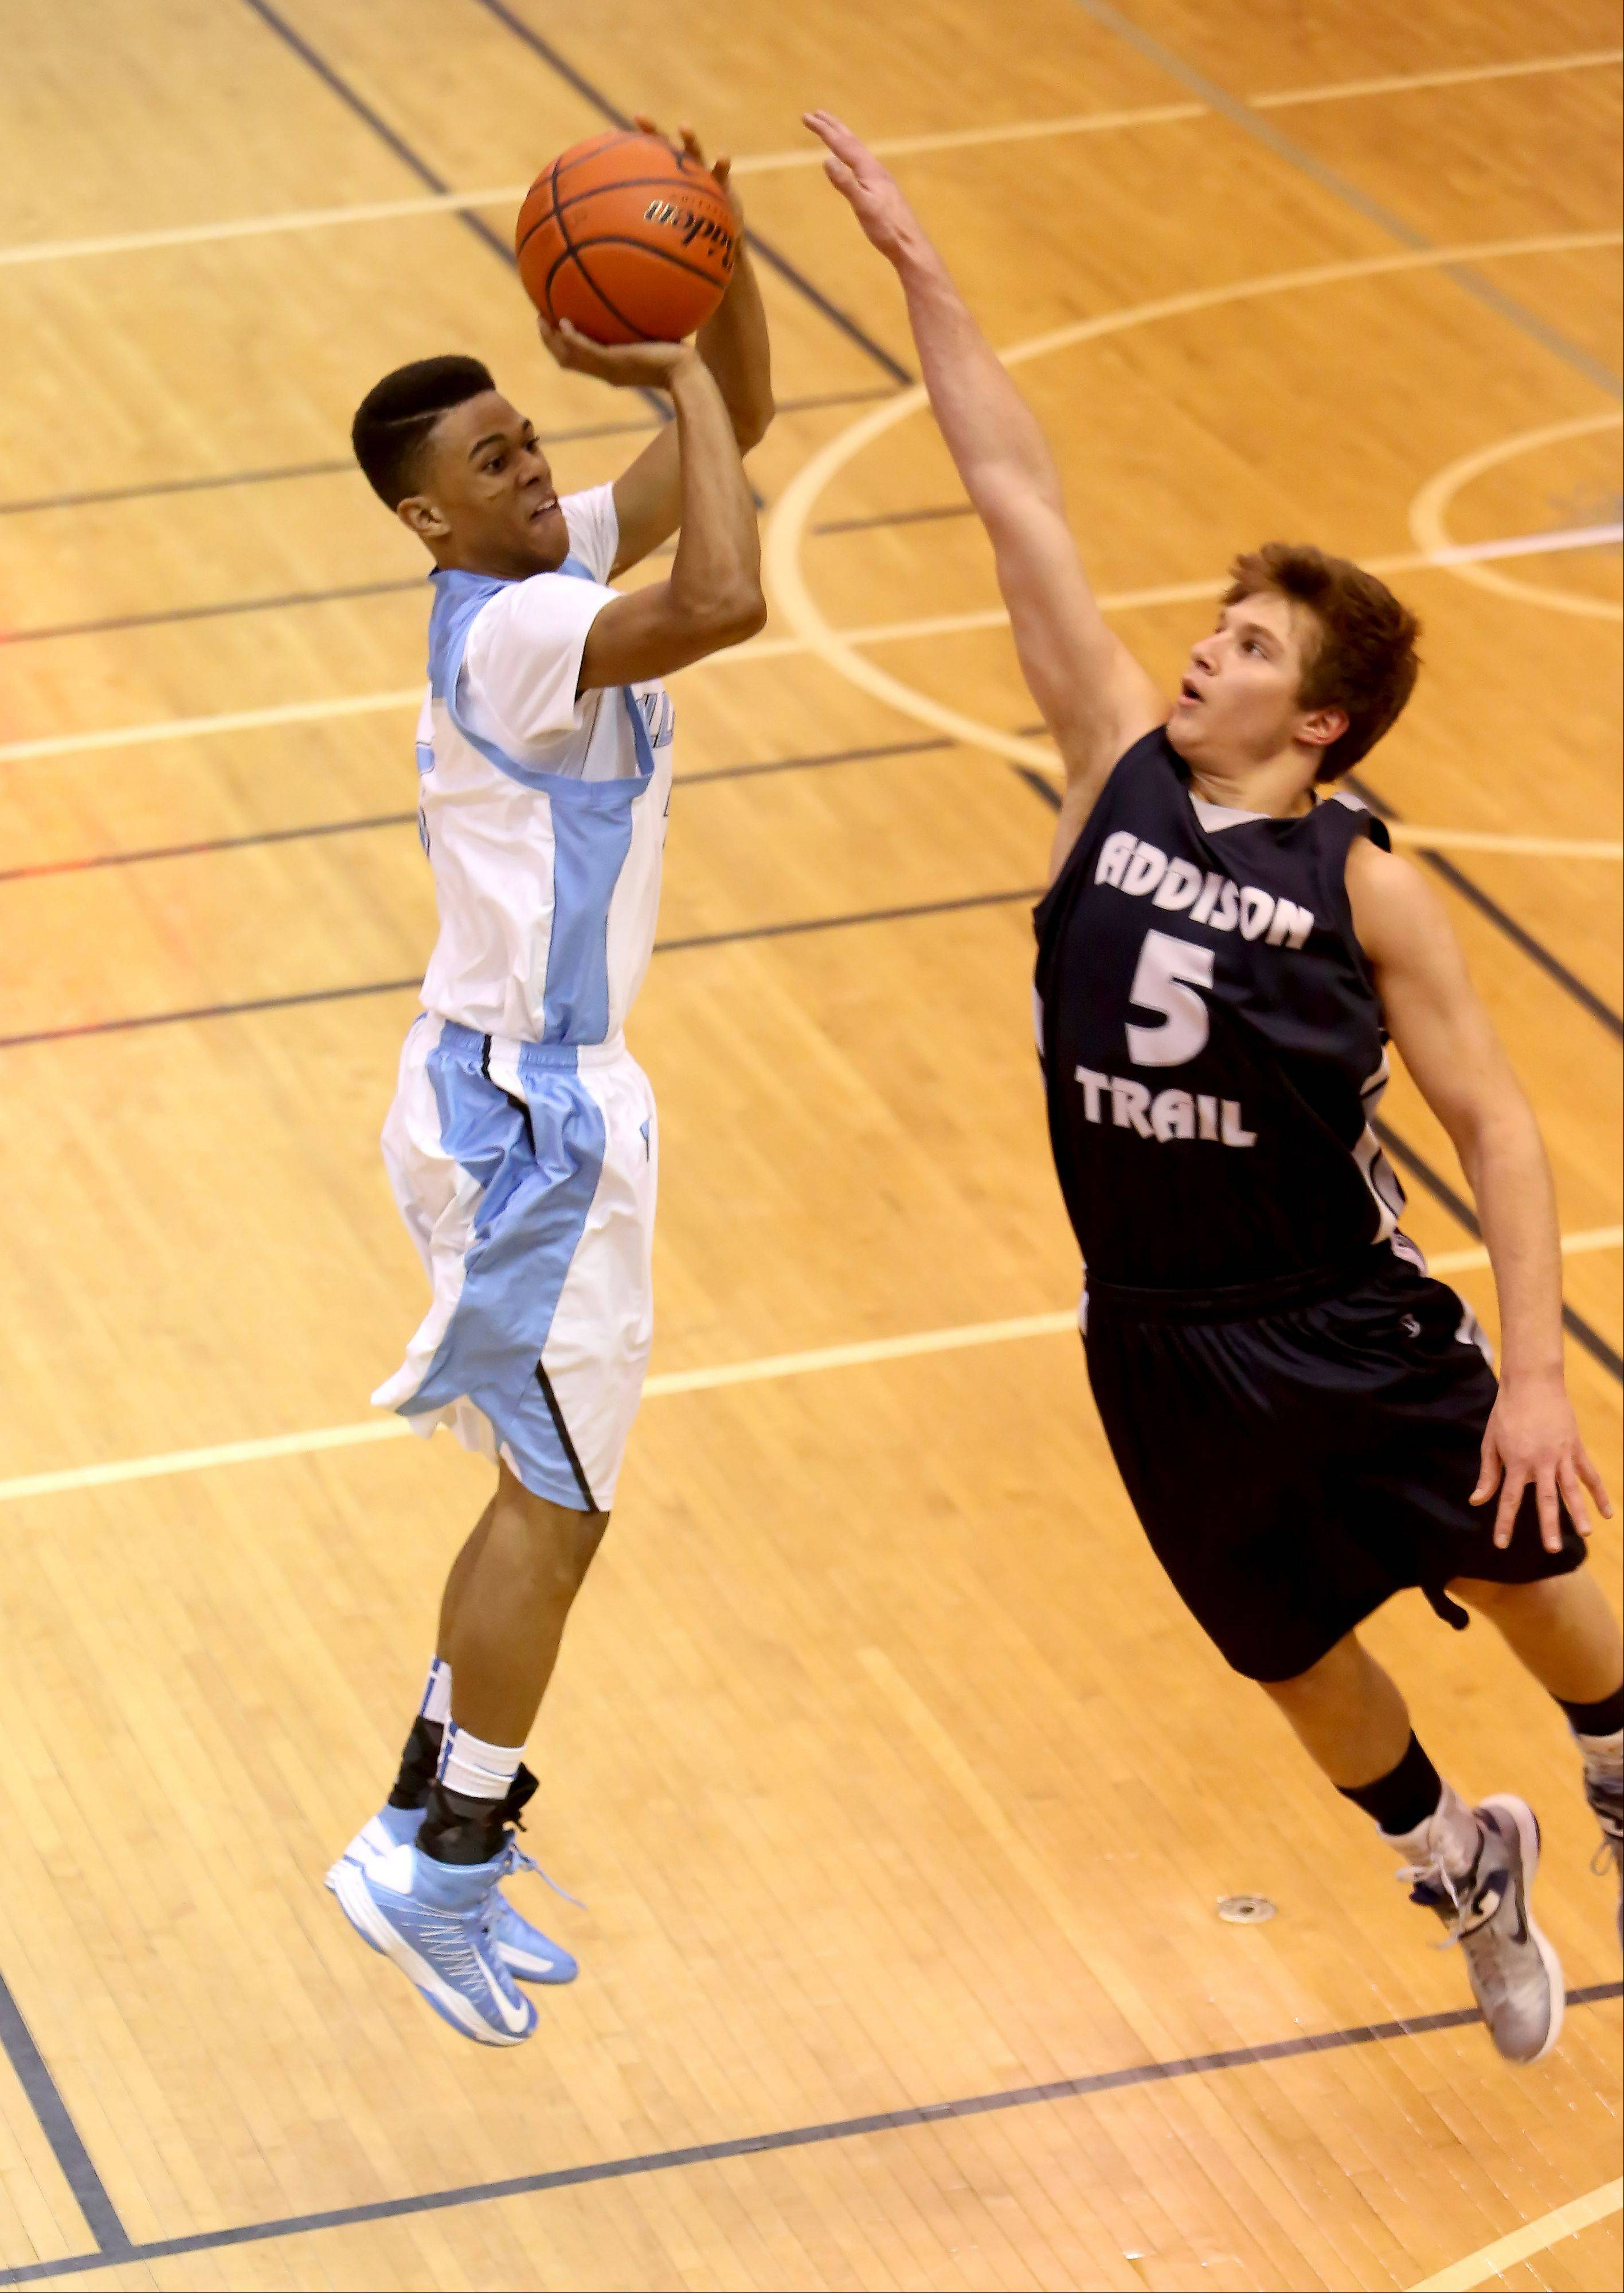 Joshua Joiner, left, of Willowbrook goes up to shoot as James Pupillo, right, of Addison Trail goes up to block.